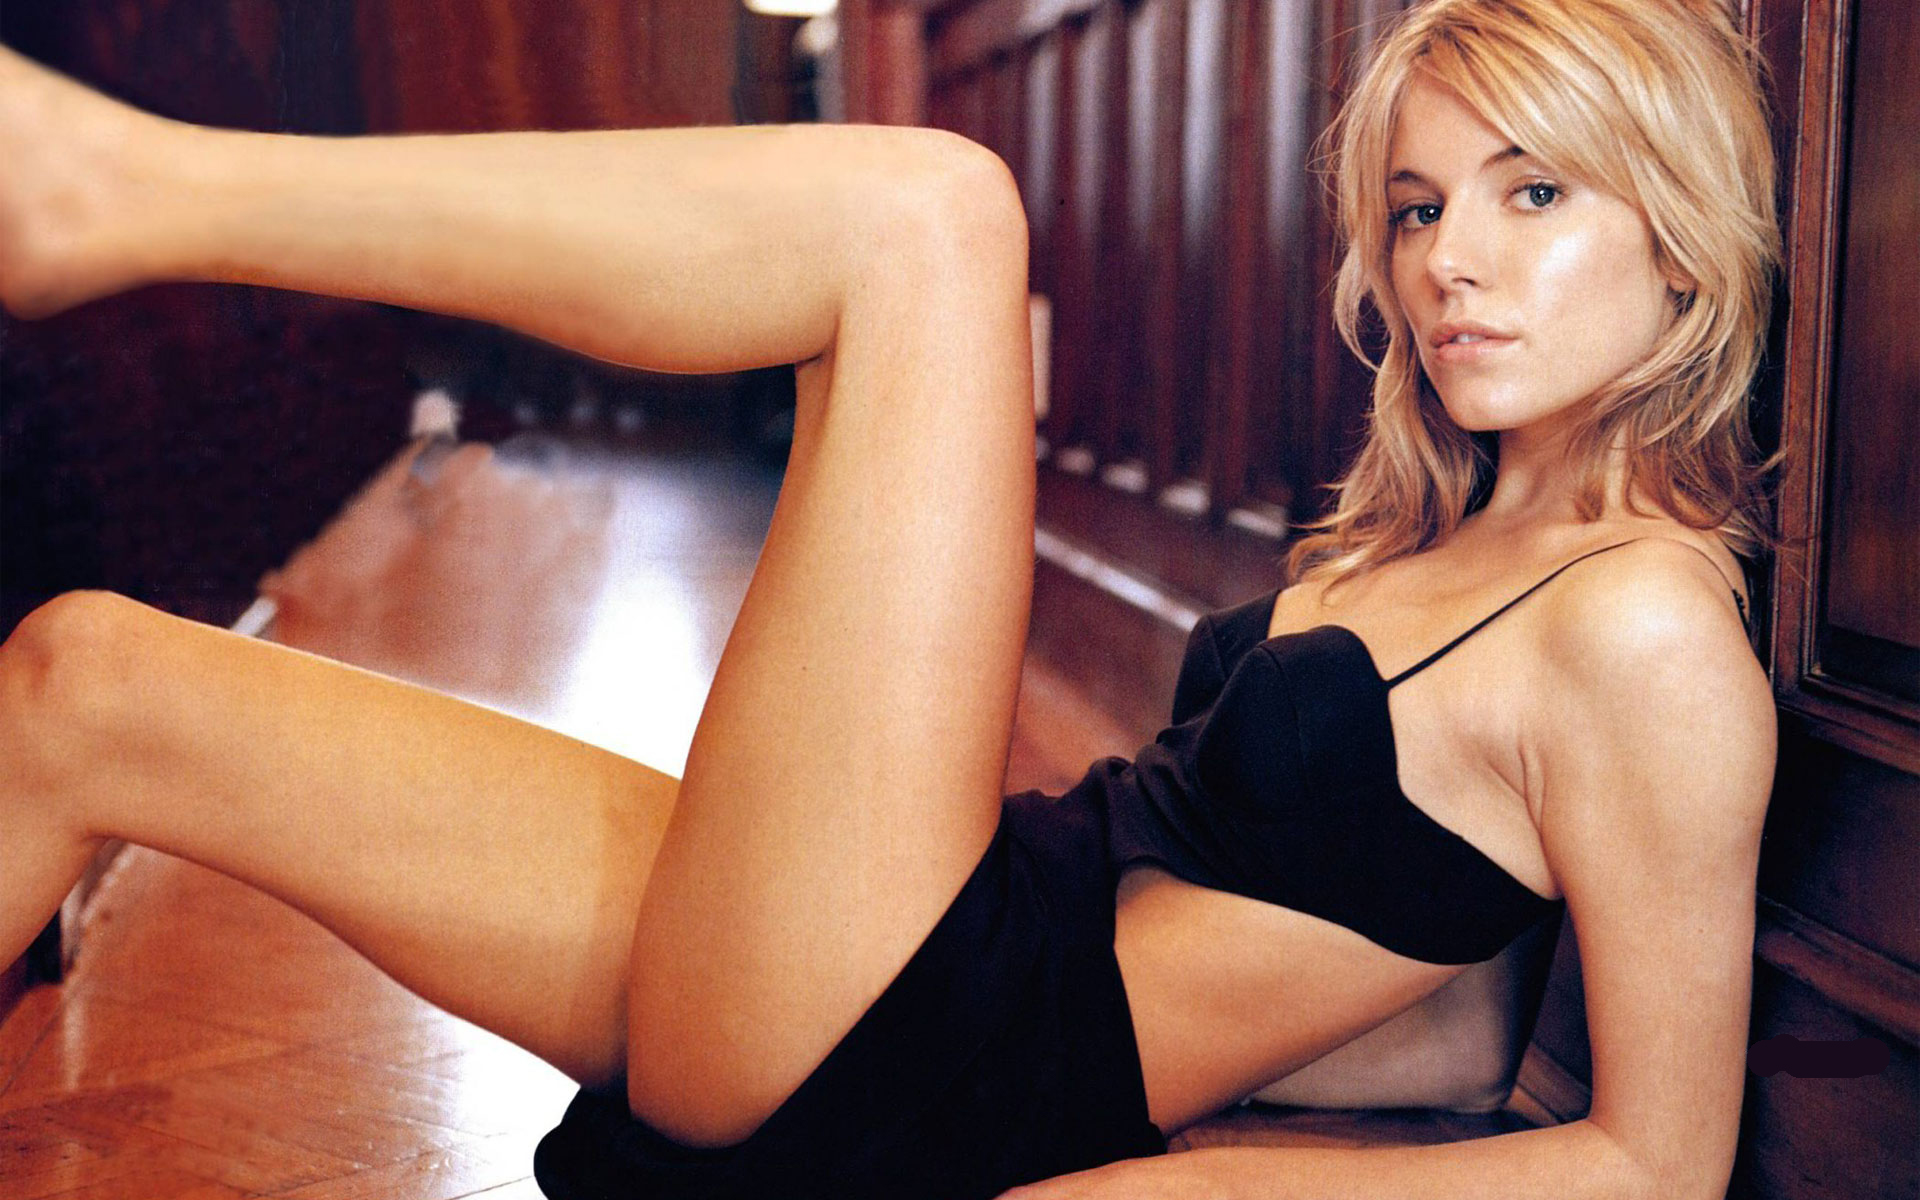 Wallpapers of celebrity's model's - Sienna Miller